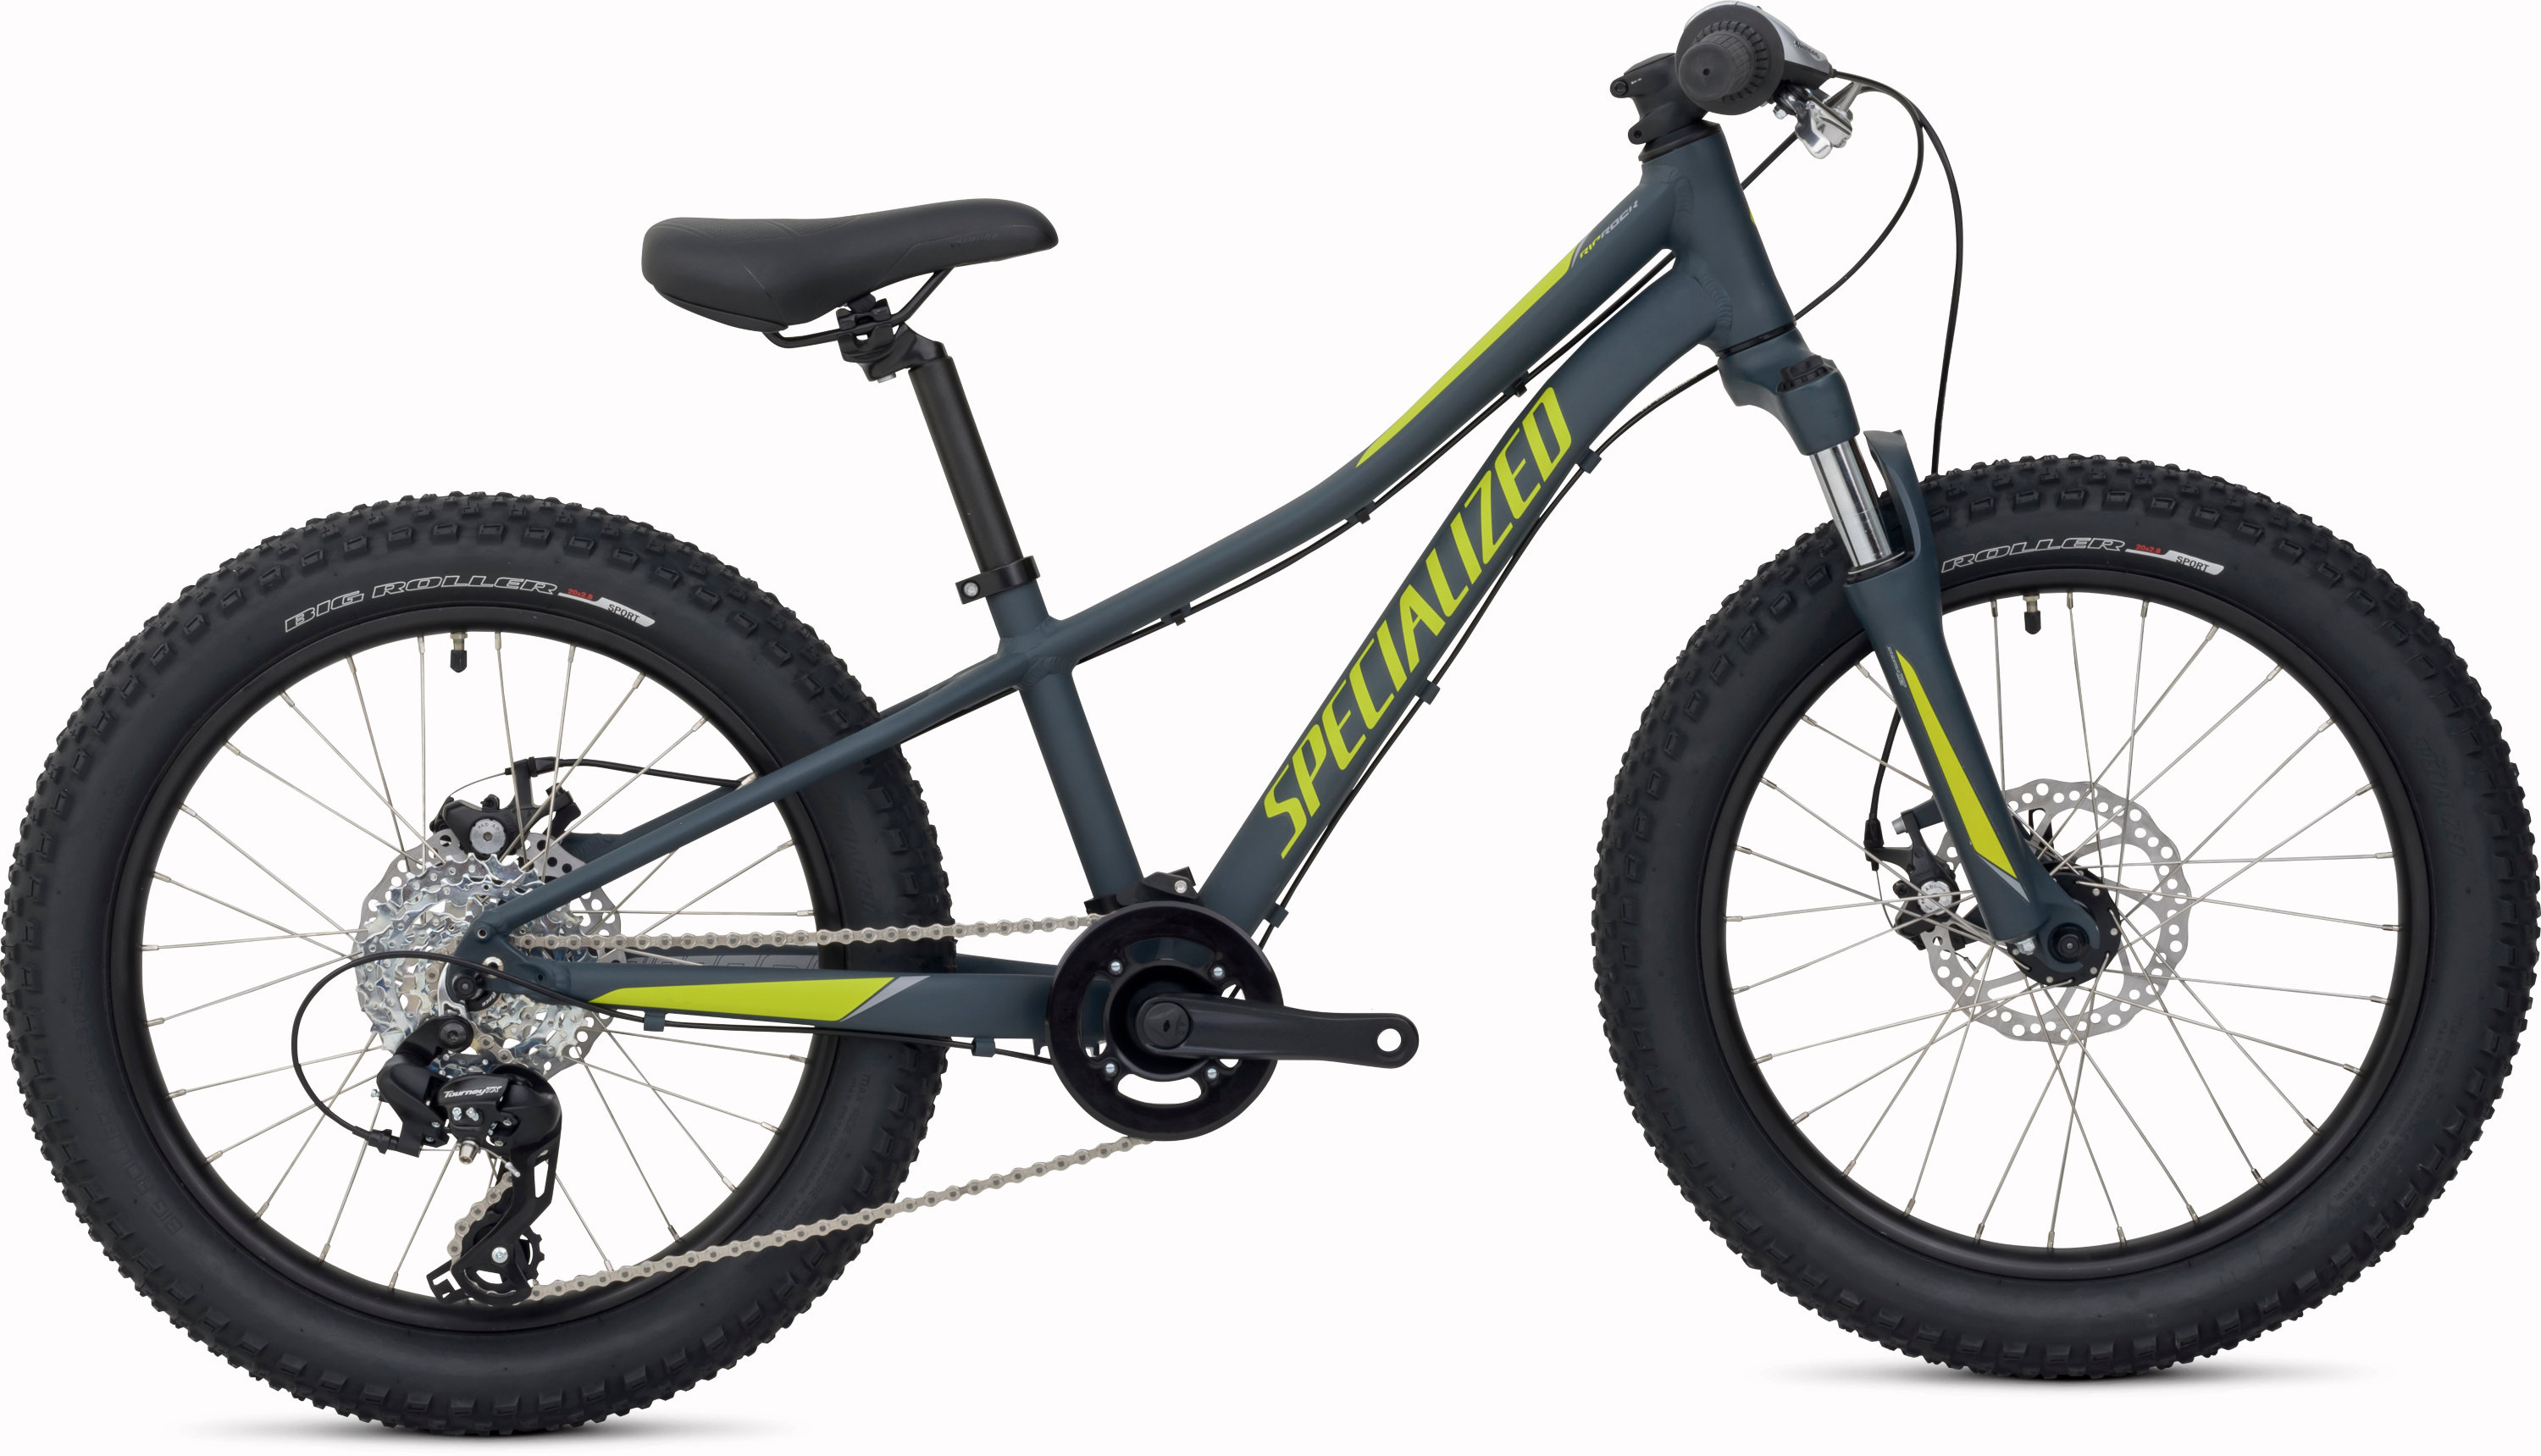 SPECIALIZED RIPROCK 20 CARBGRY/HYP/CLGRY 9 - Bike Zone